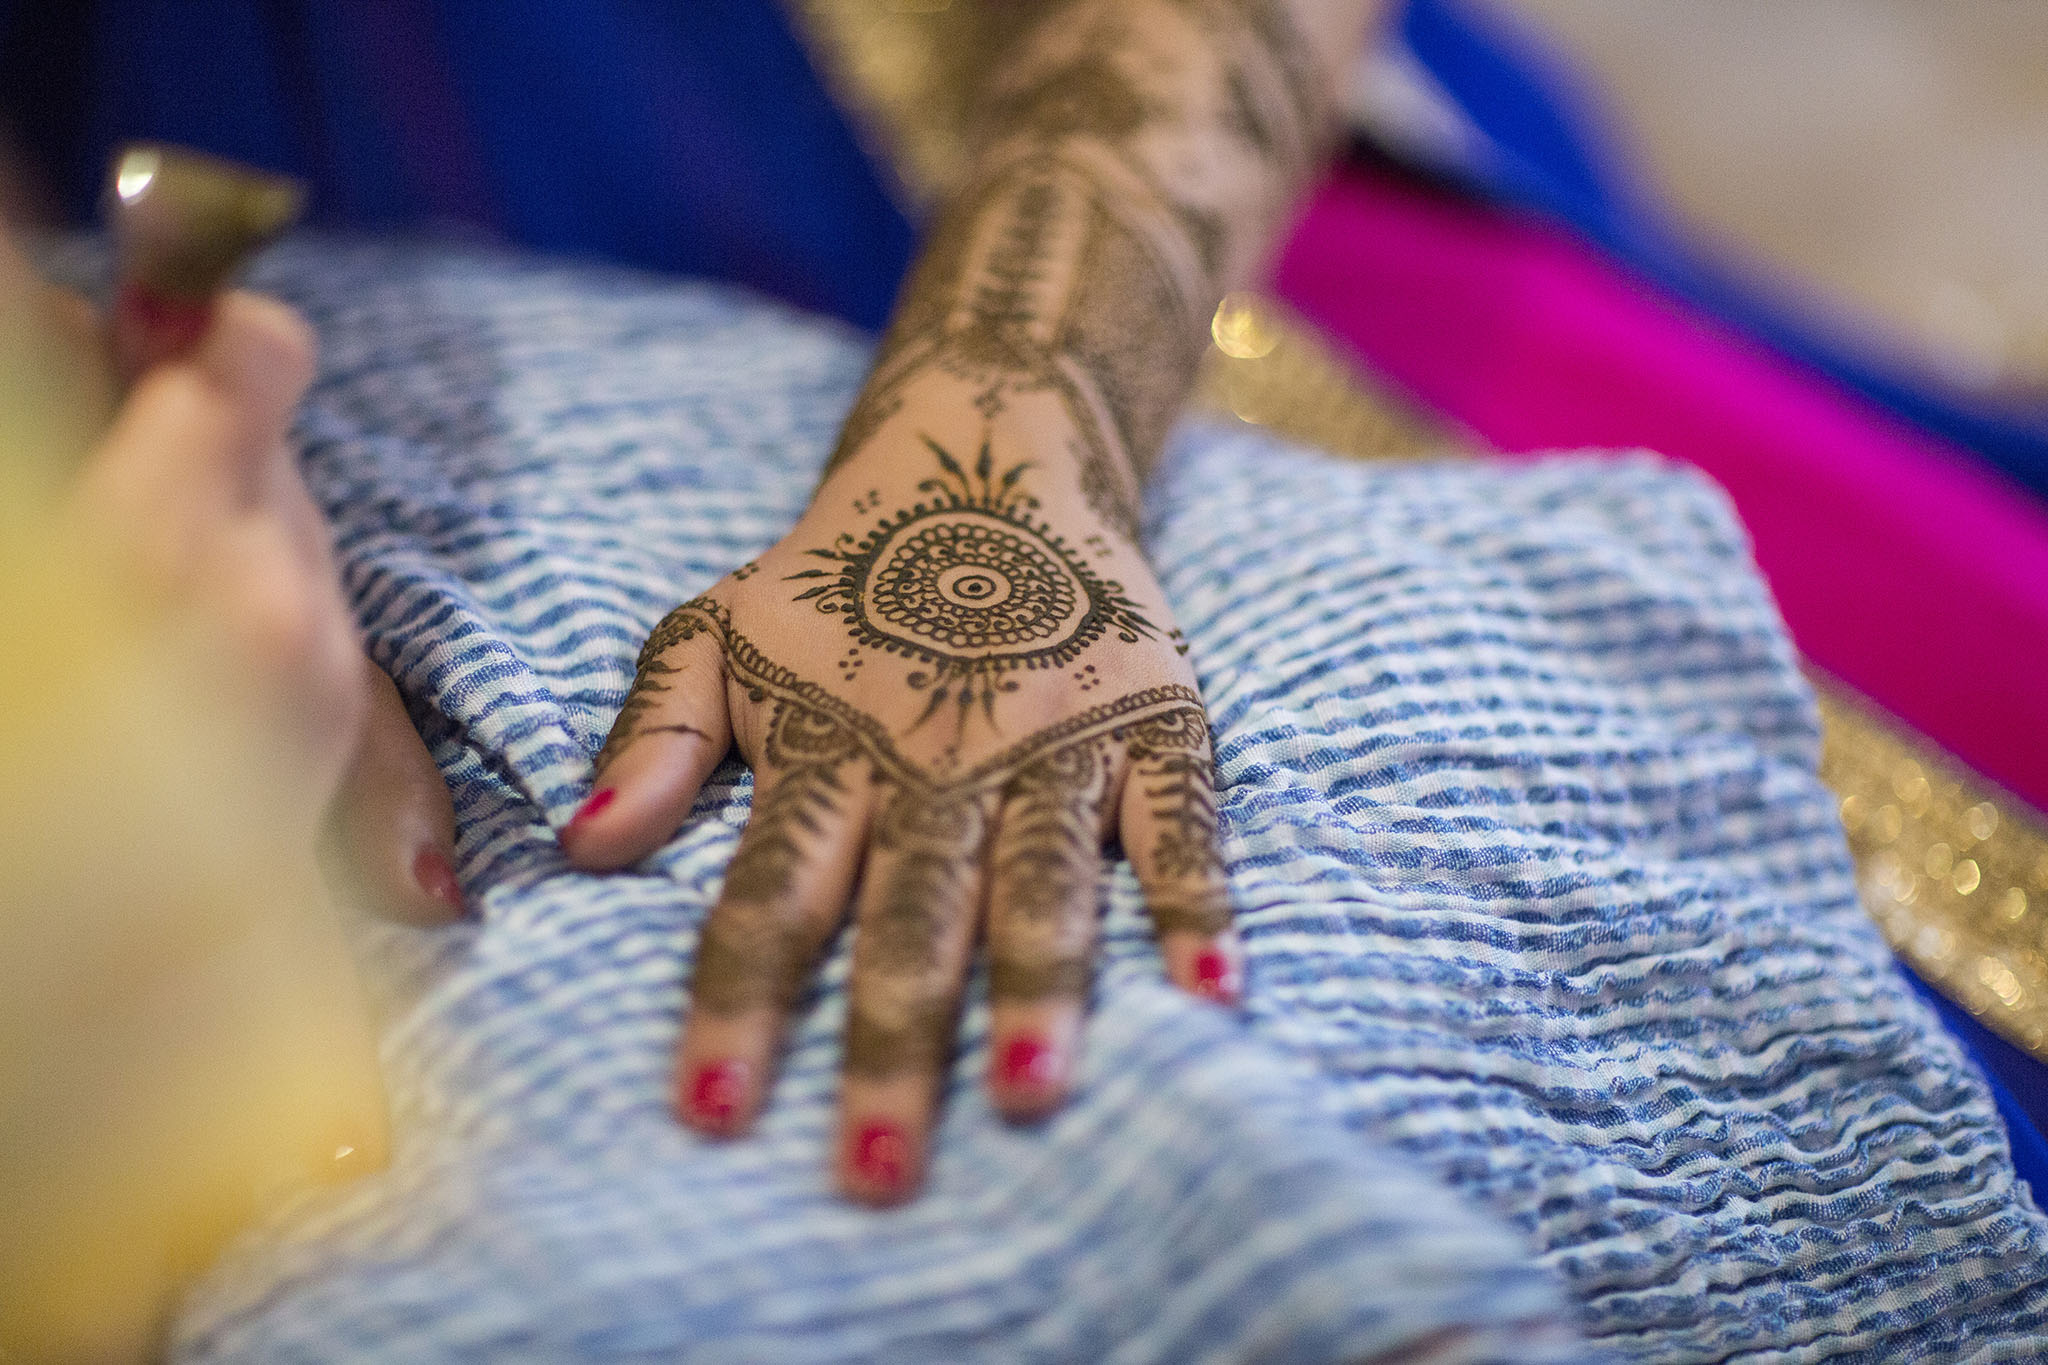 elizabethgphotography_kingslangley_hertfordshire_fineart_indian_wedding_mehndi_photography_jigna_bhuja_03.jpg